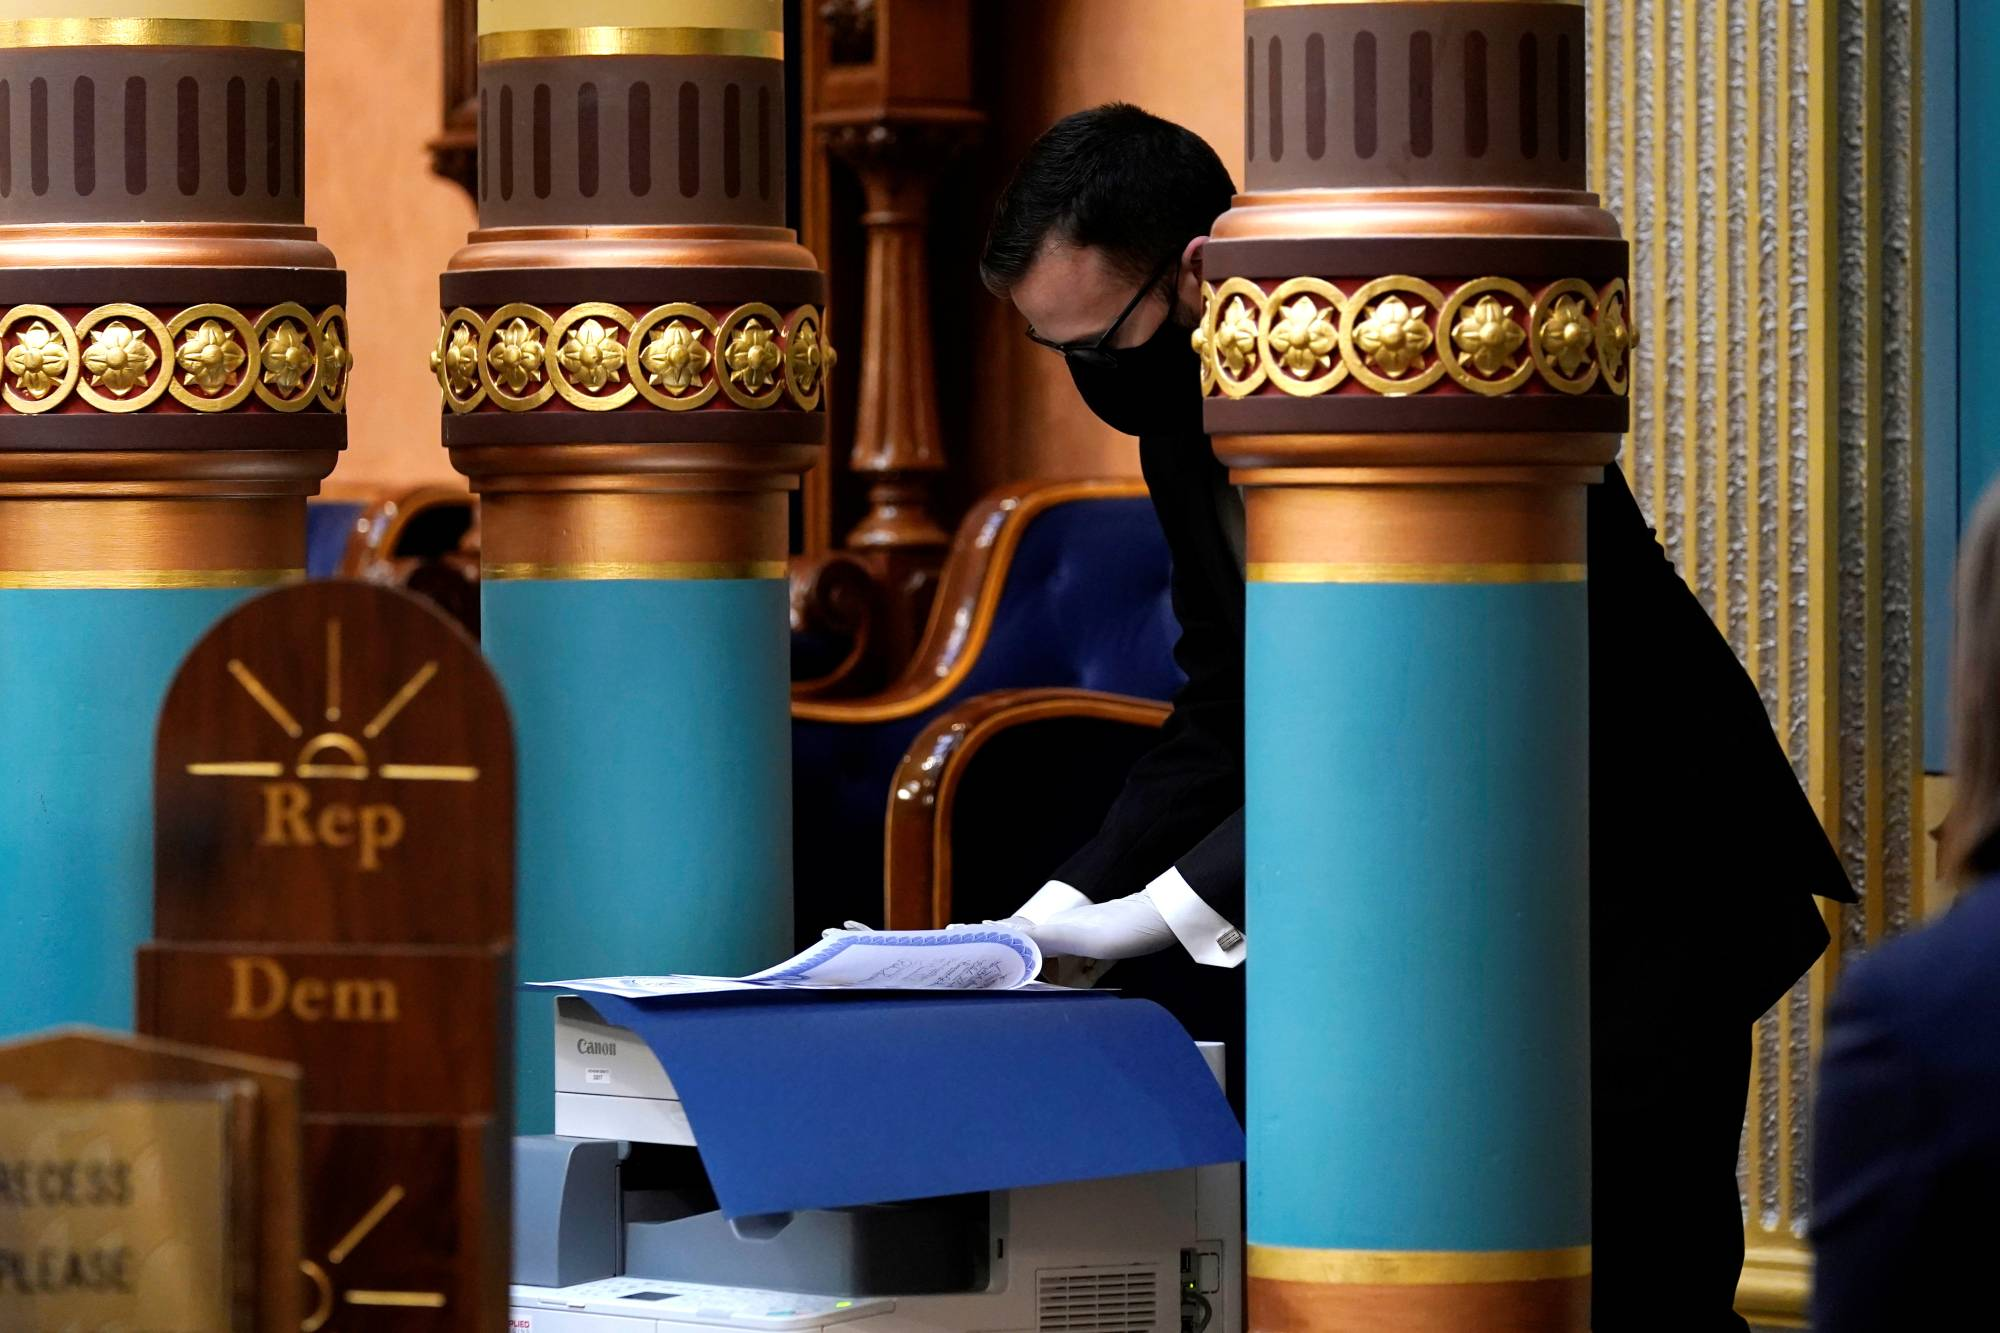 A staff member prepares the official Certificate of Votes for mailing after the Electoral College cast their votes at the state Capitol in Lansing, Michigan, on Monday. | POOL / VIA REUTERS